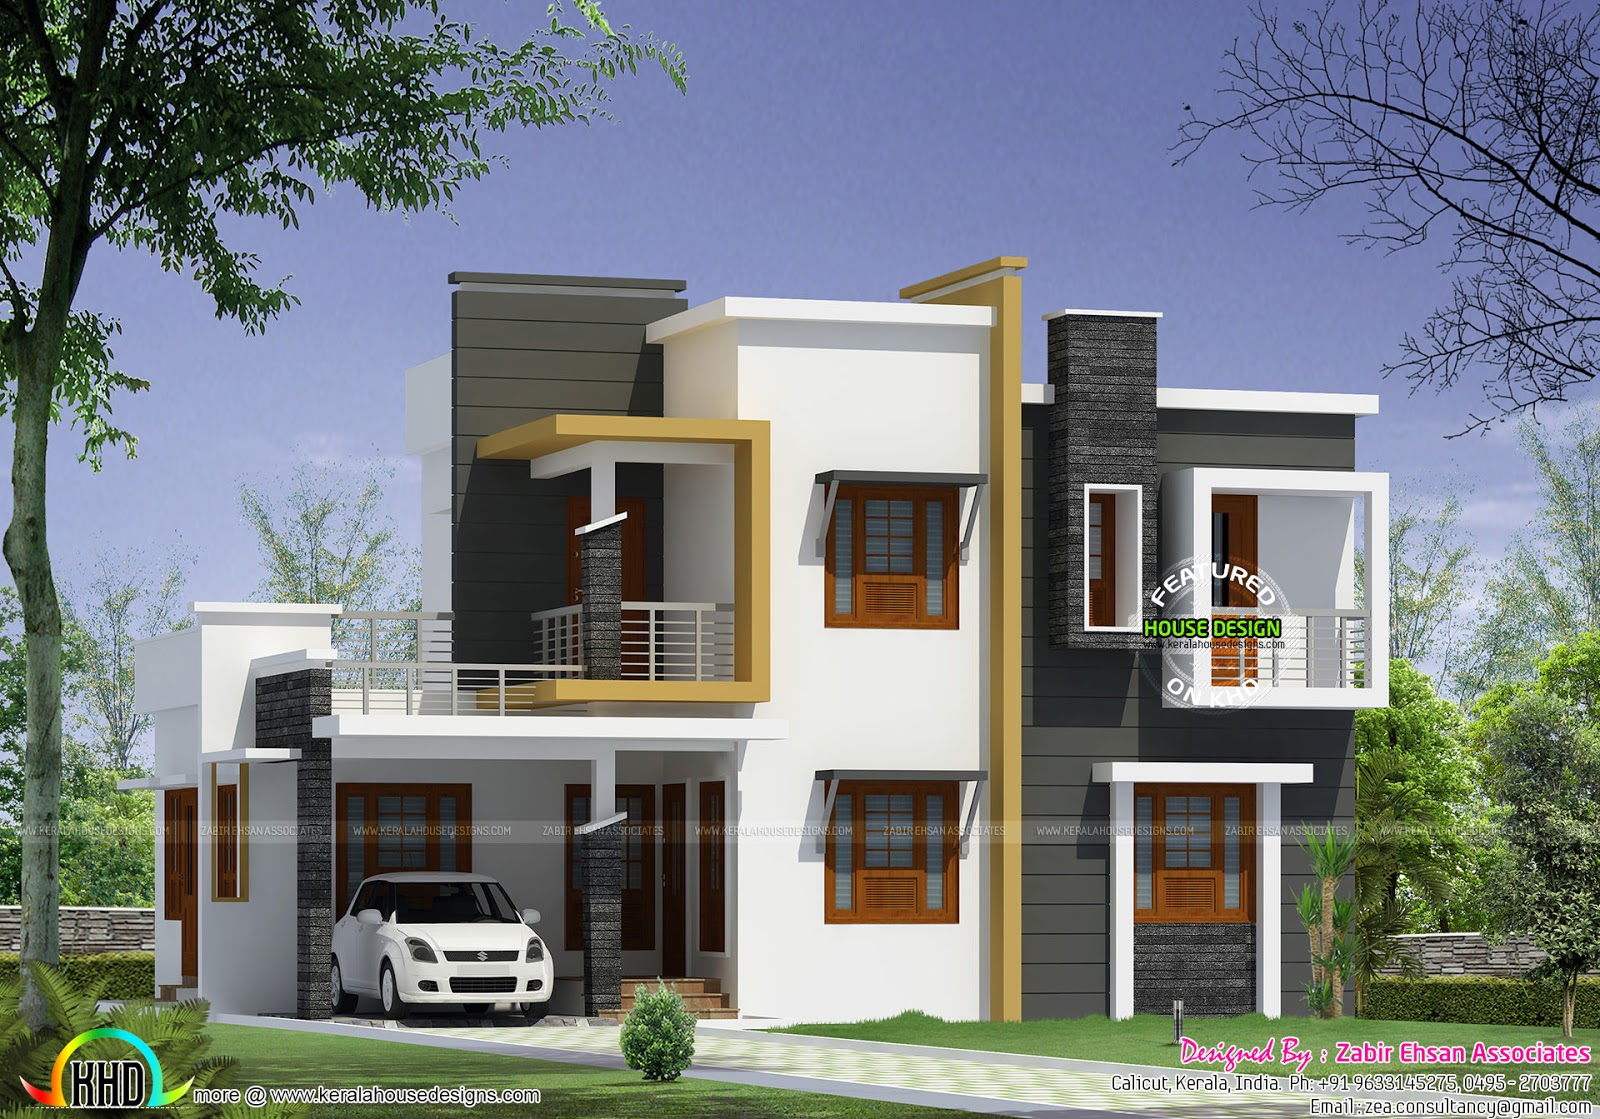 Box type modern house plan kerala home design and floor for Modern house plans with photos